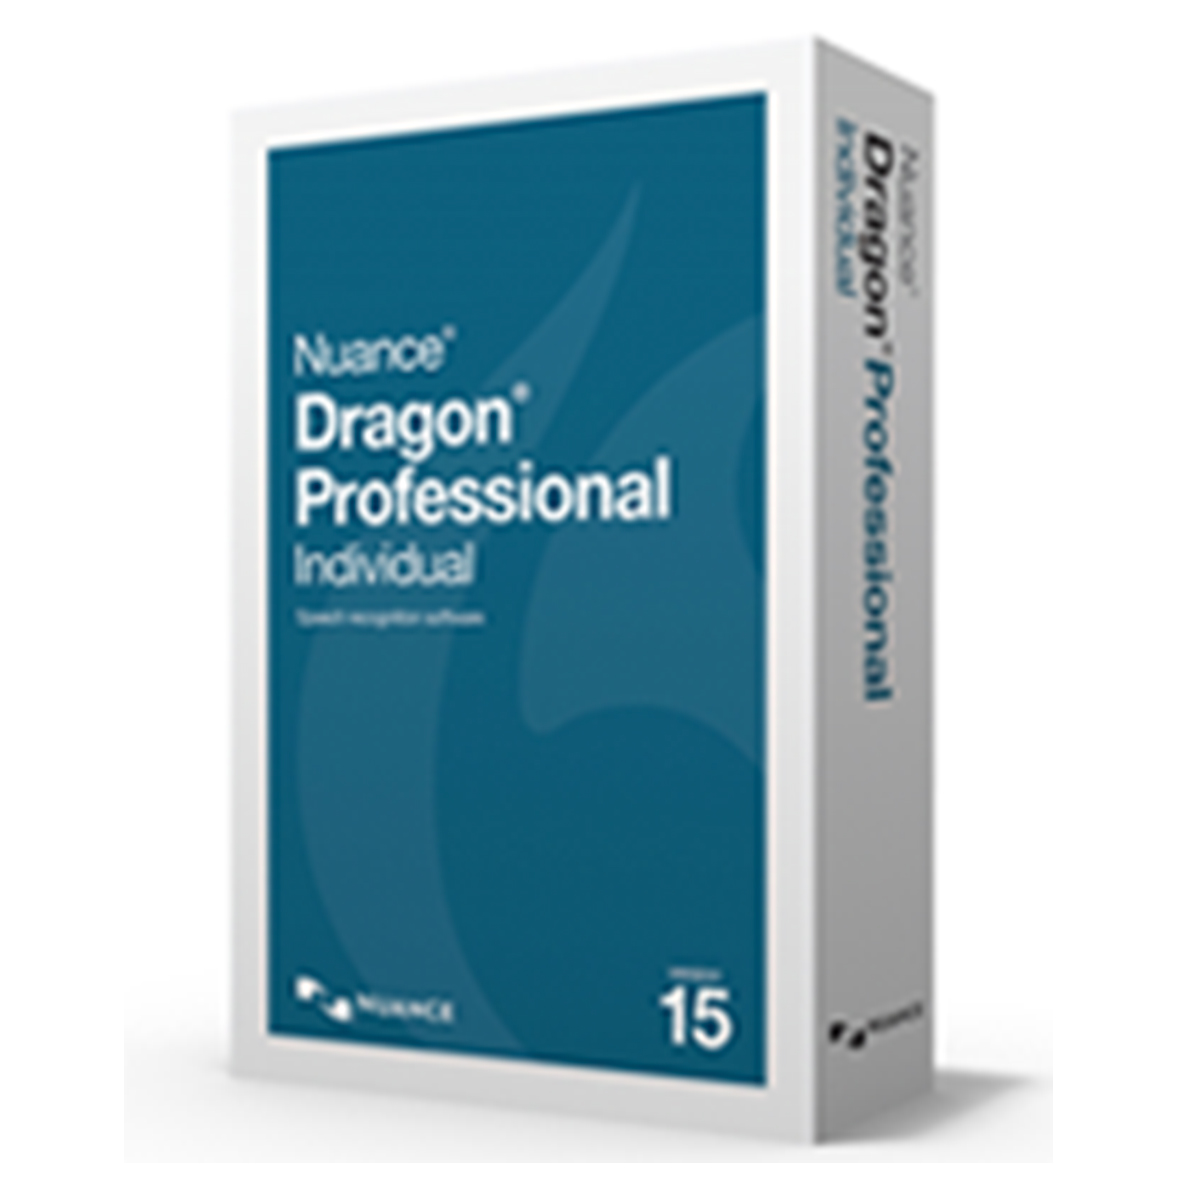 Nuance Dragon Professional Individual 15 - Educational OLV Box Copy